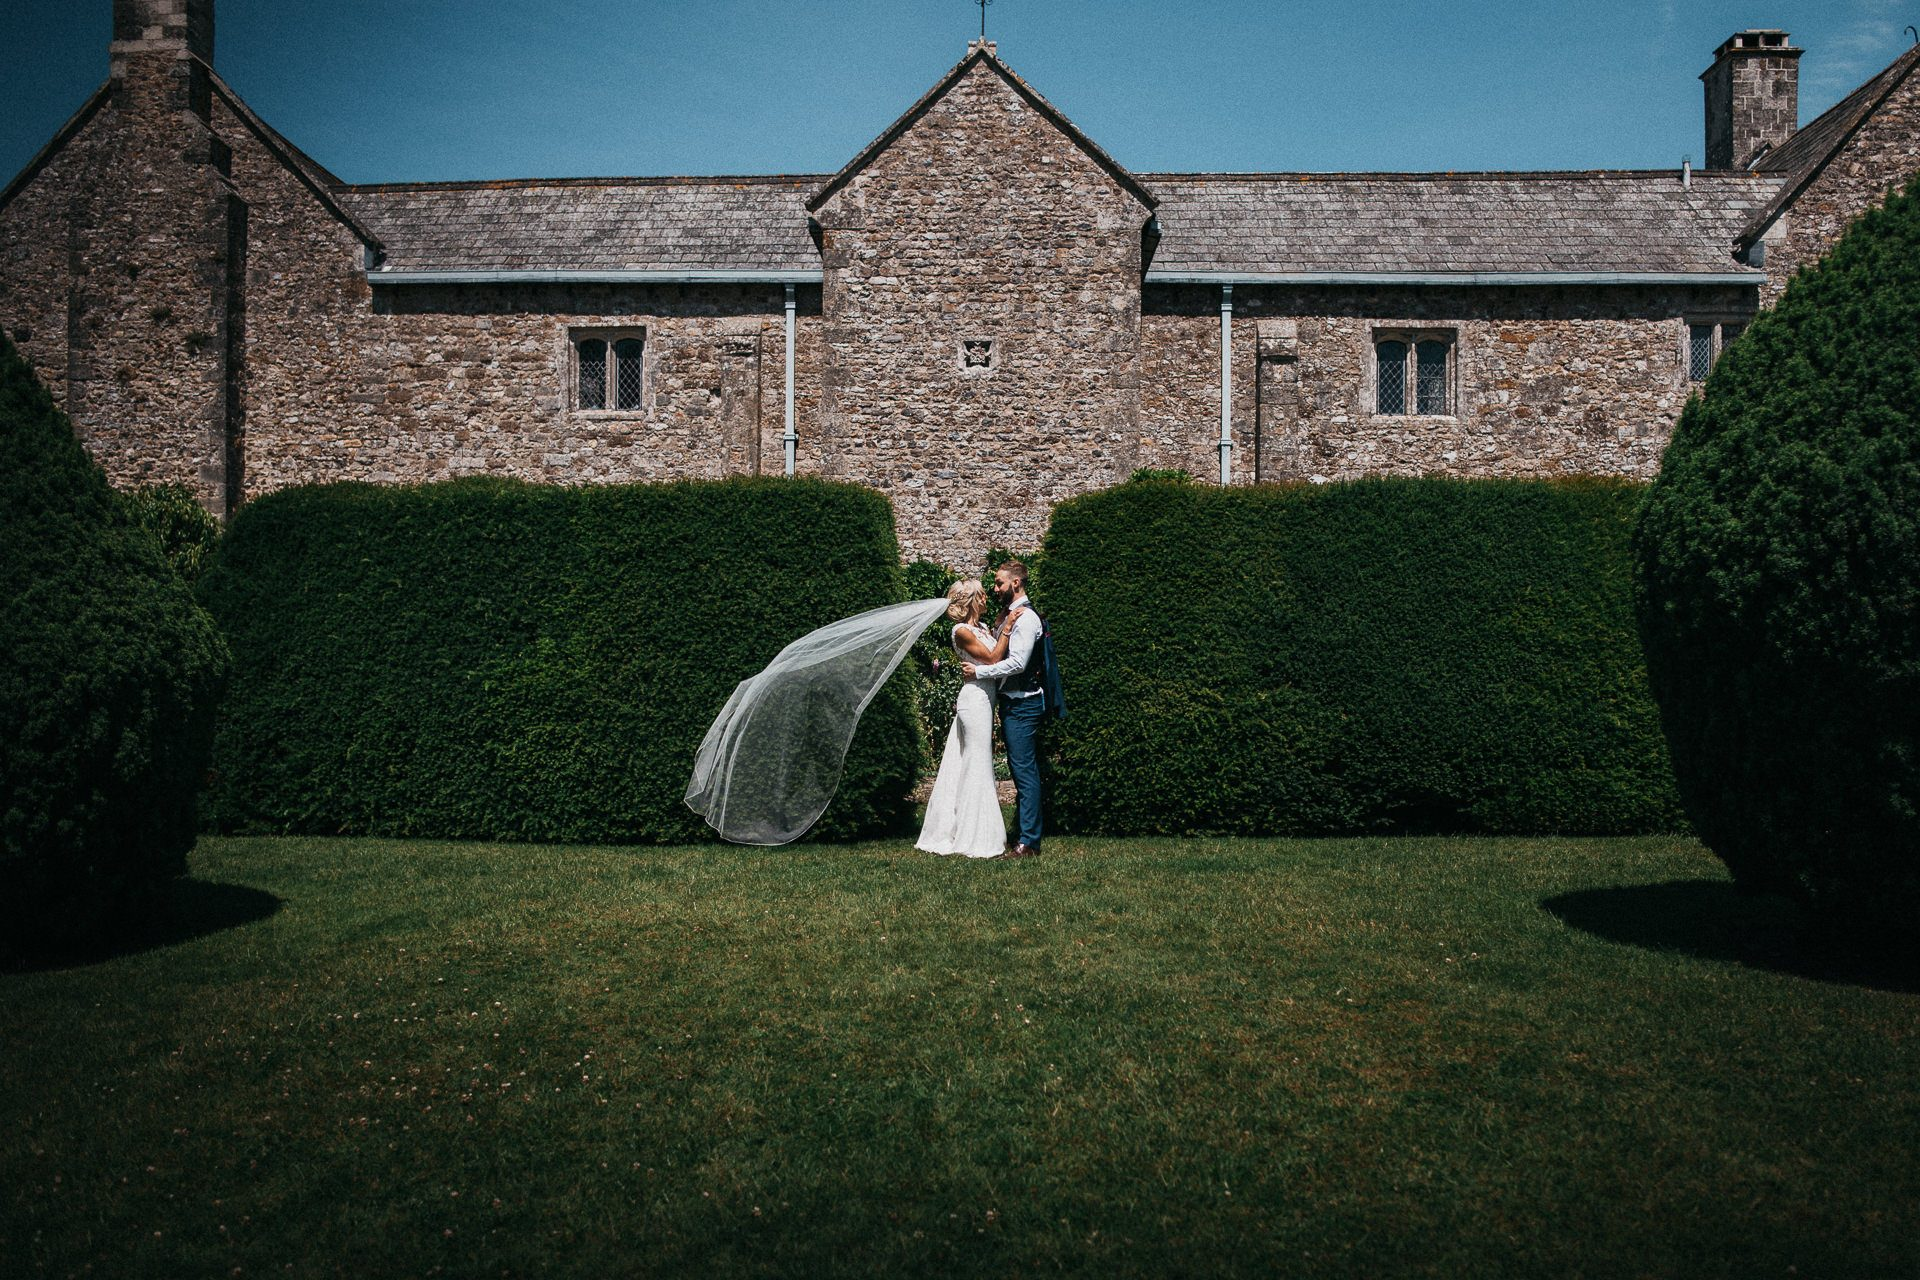 0087-DEVON-SOMERSET-WEDDING-PHOTOGRAPHER-0381-BEST-OF-2019-LOUISE-MAY-DEVON-SOMERSET-WEDDING-PHOTOGRAPHY-LM2_1556